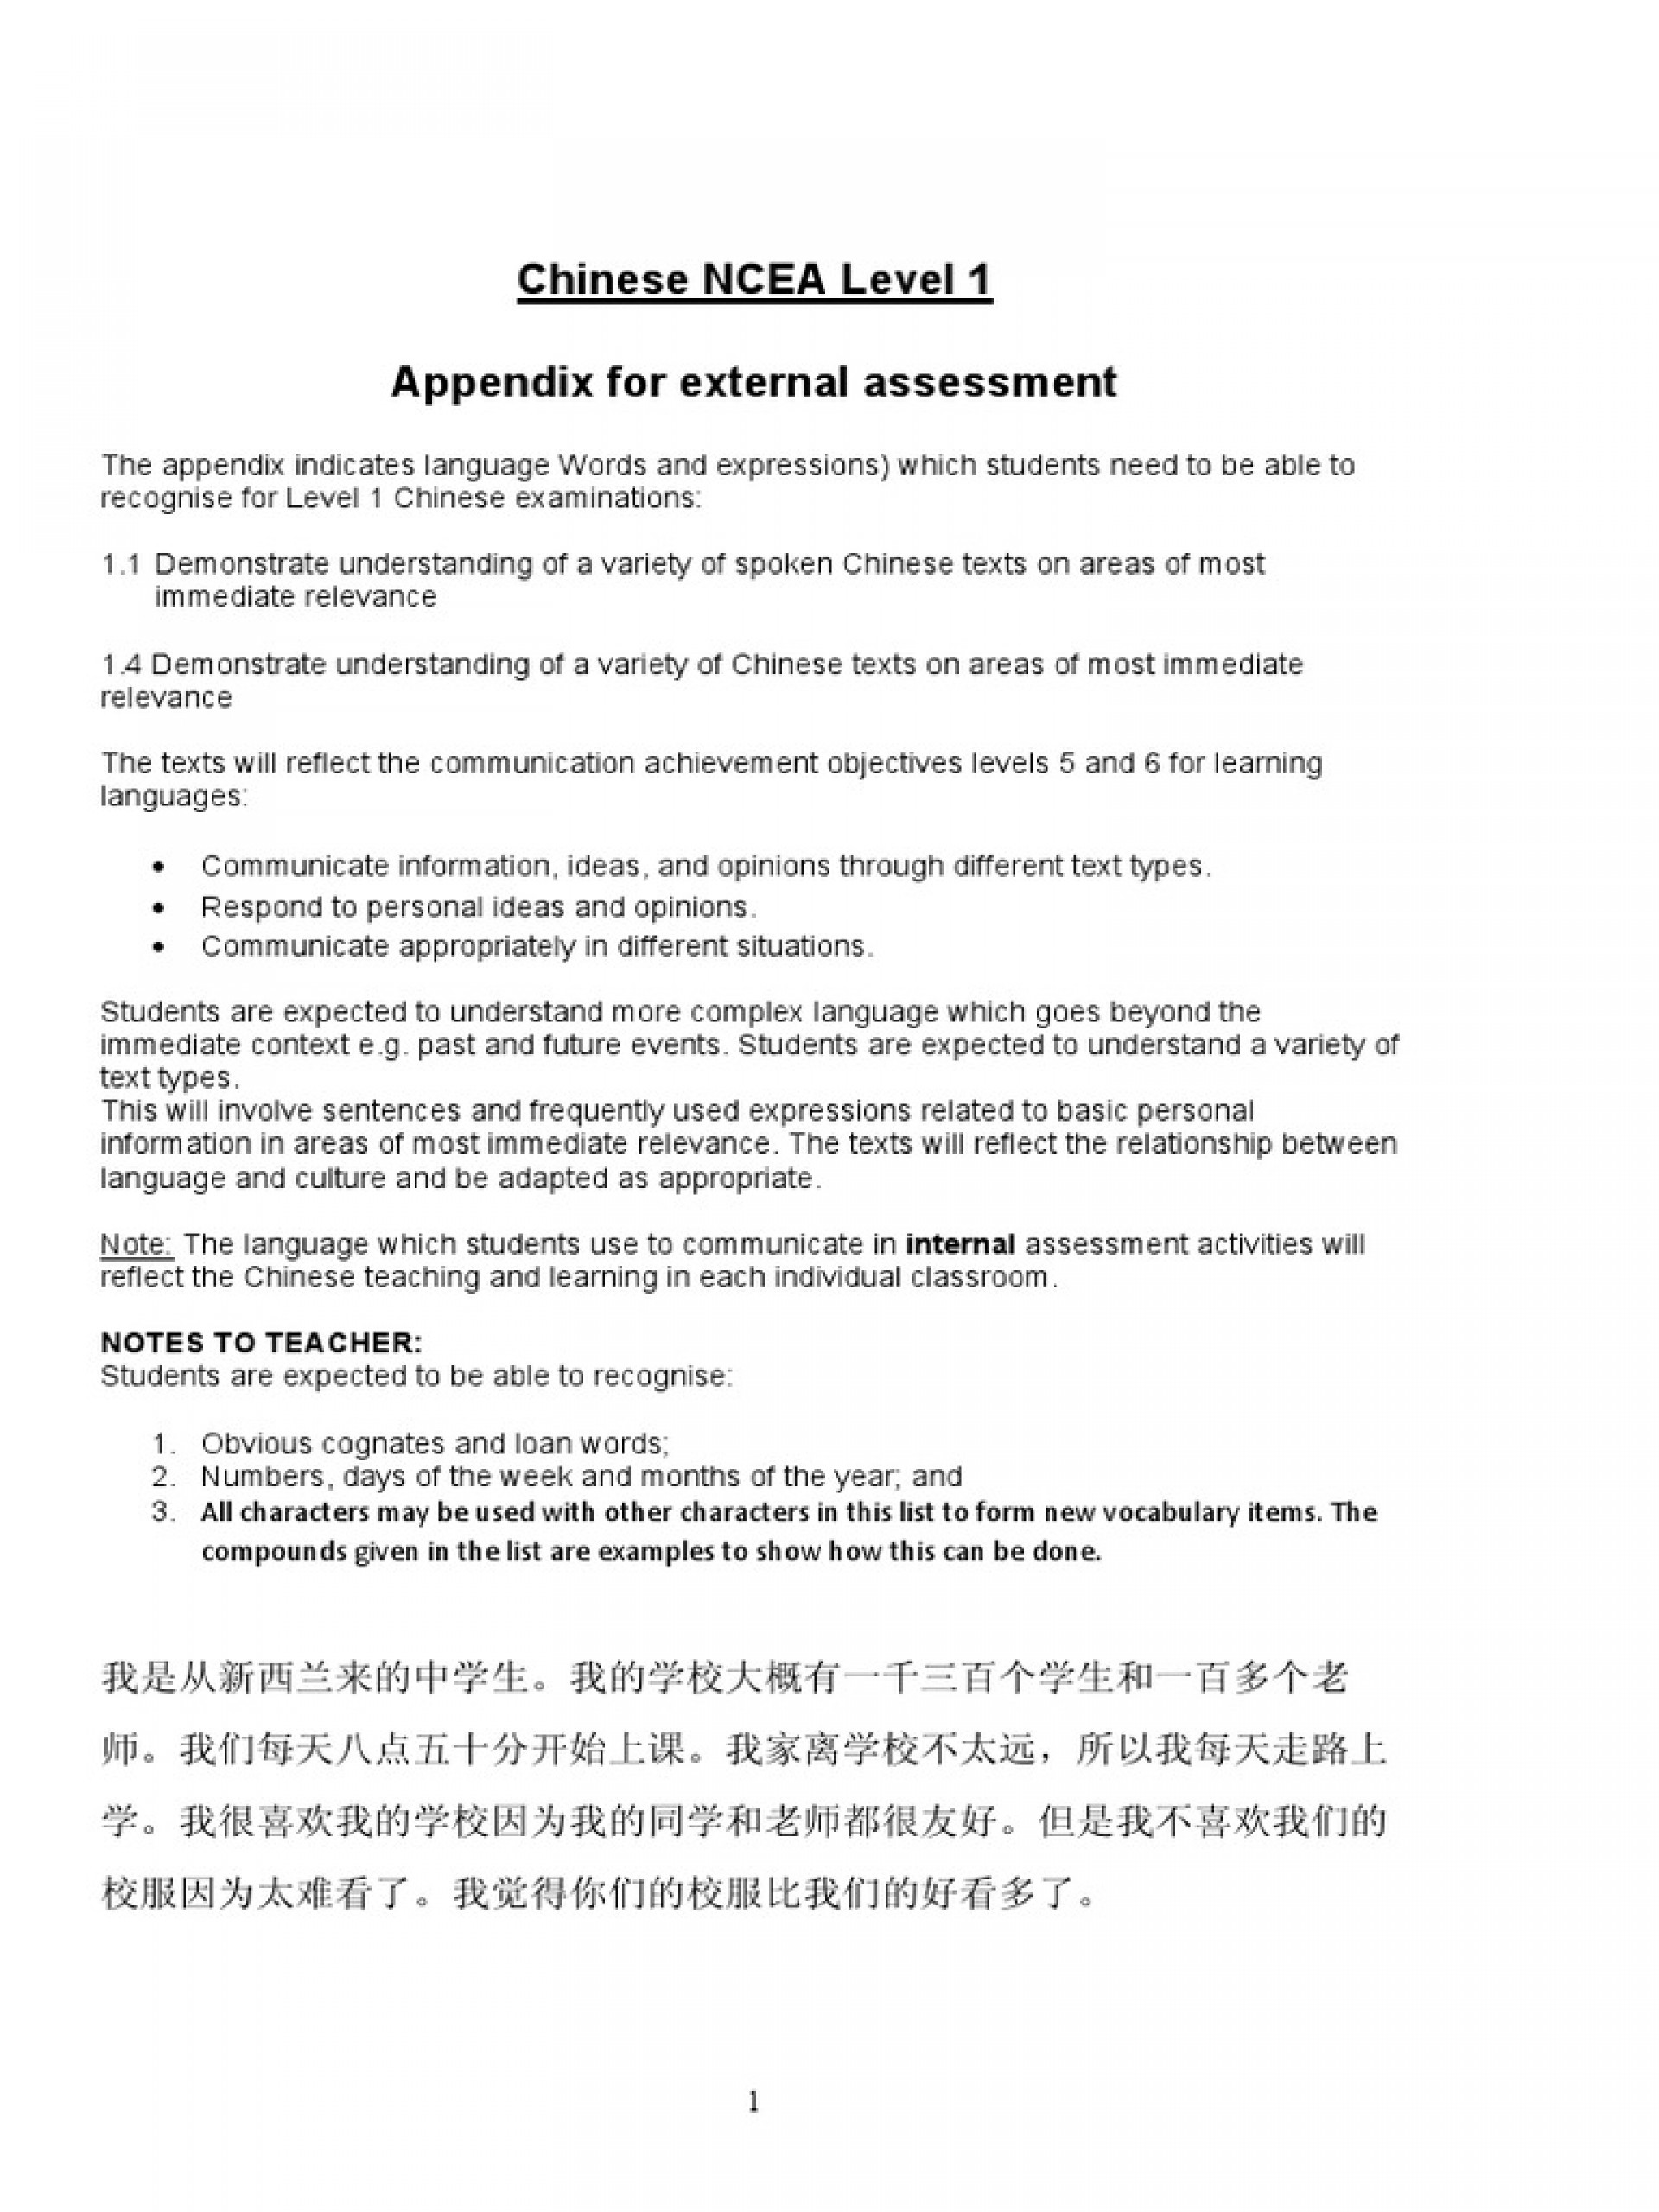 011 University Of Washington Essay Example Chinese Vocab Ncea Level 1 575ee370b6d87ff9888b4638 Unique Application Examples Prompts Bothell Prompt 1920